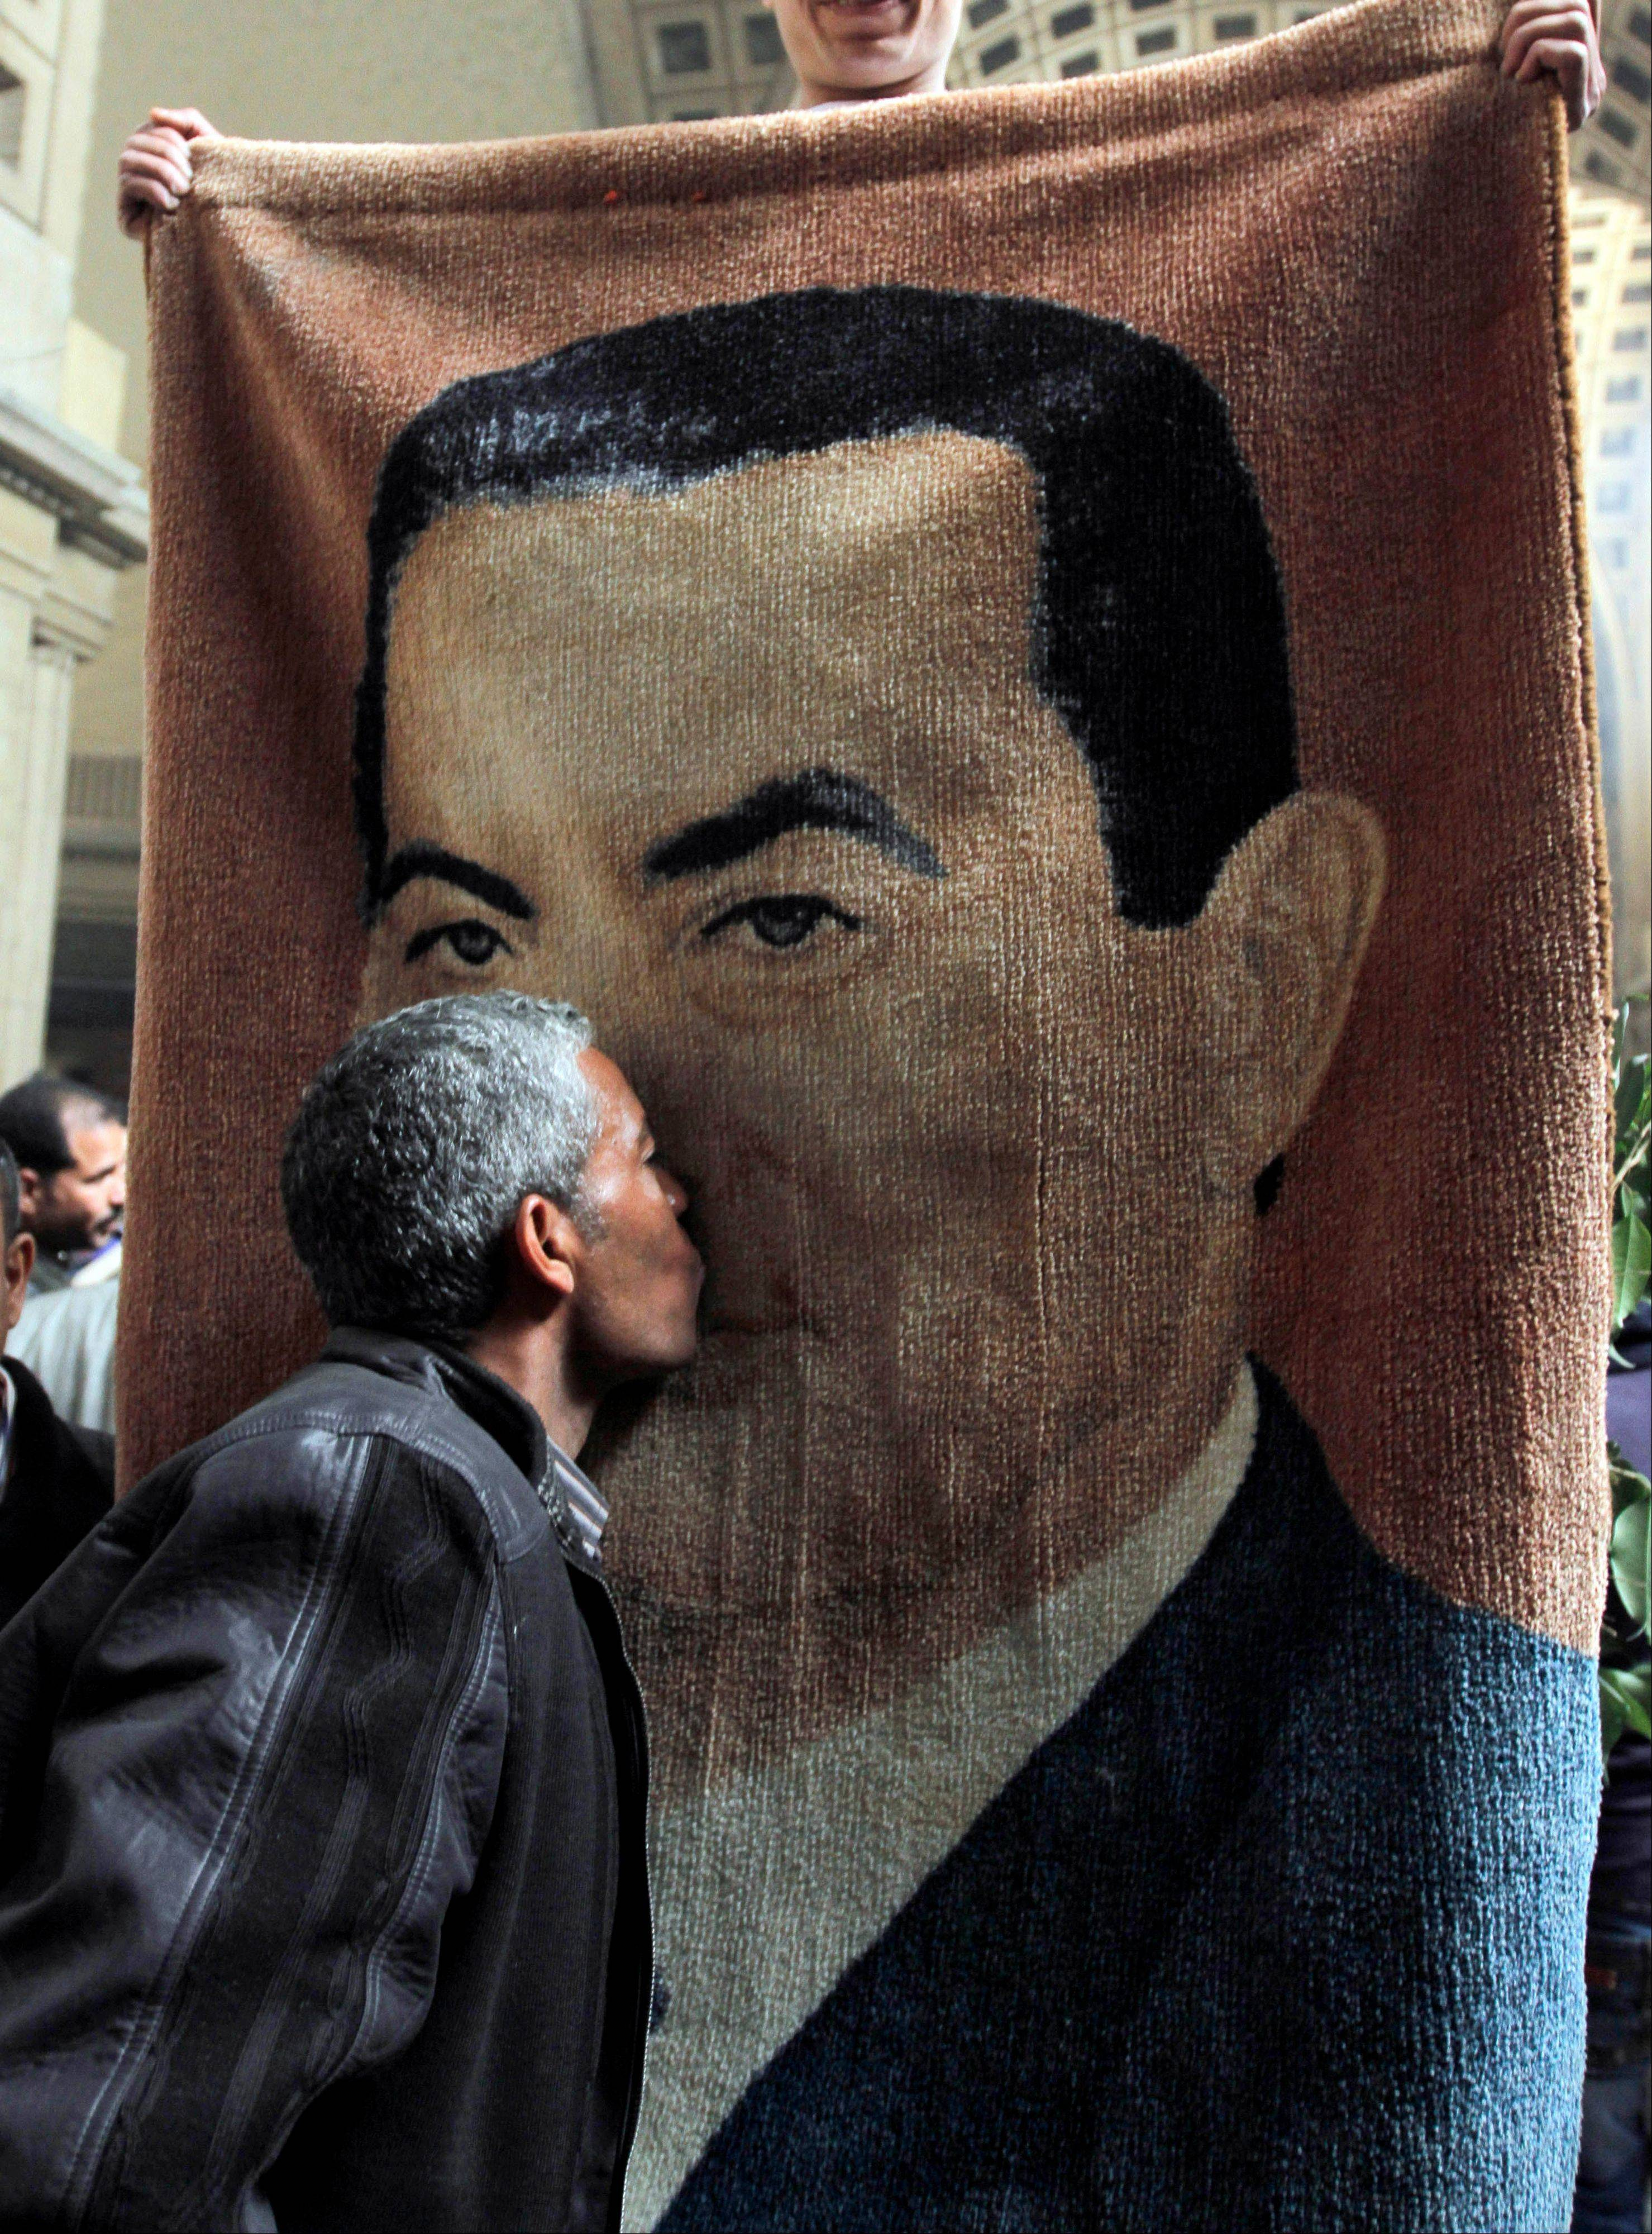 An Egyptian kisses an image of ousted former Egyptian President Hosni Mubarak, woven on a carpet that was brought in by Mubarak supporters, as they celebrate an appeal granted by a court, in Cairo on Sunday.